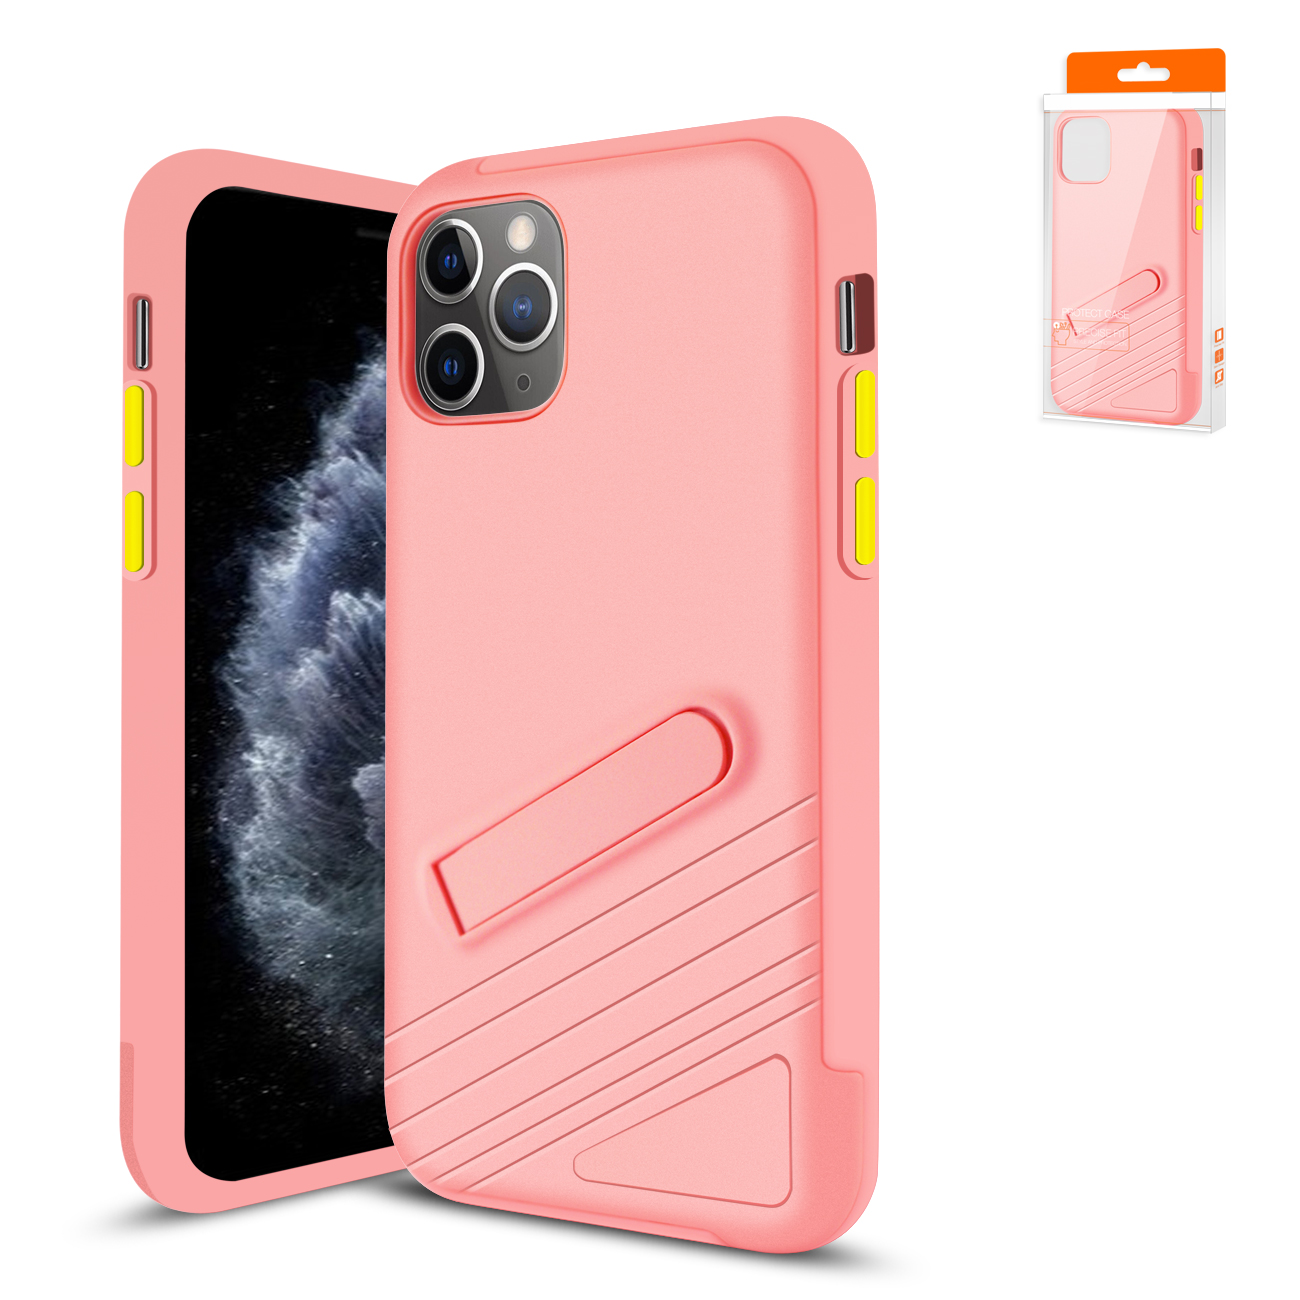 Apple iPhone 11 Pro Max Armor Cases In Pink